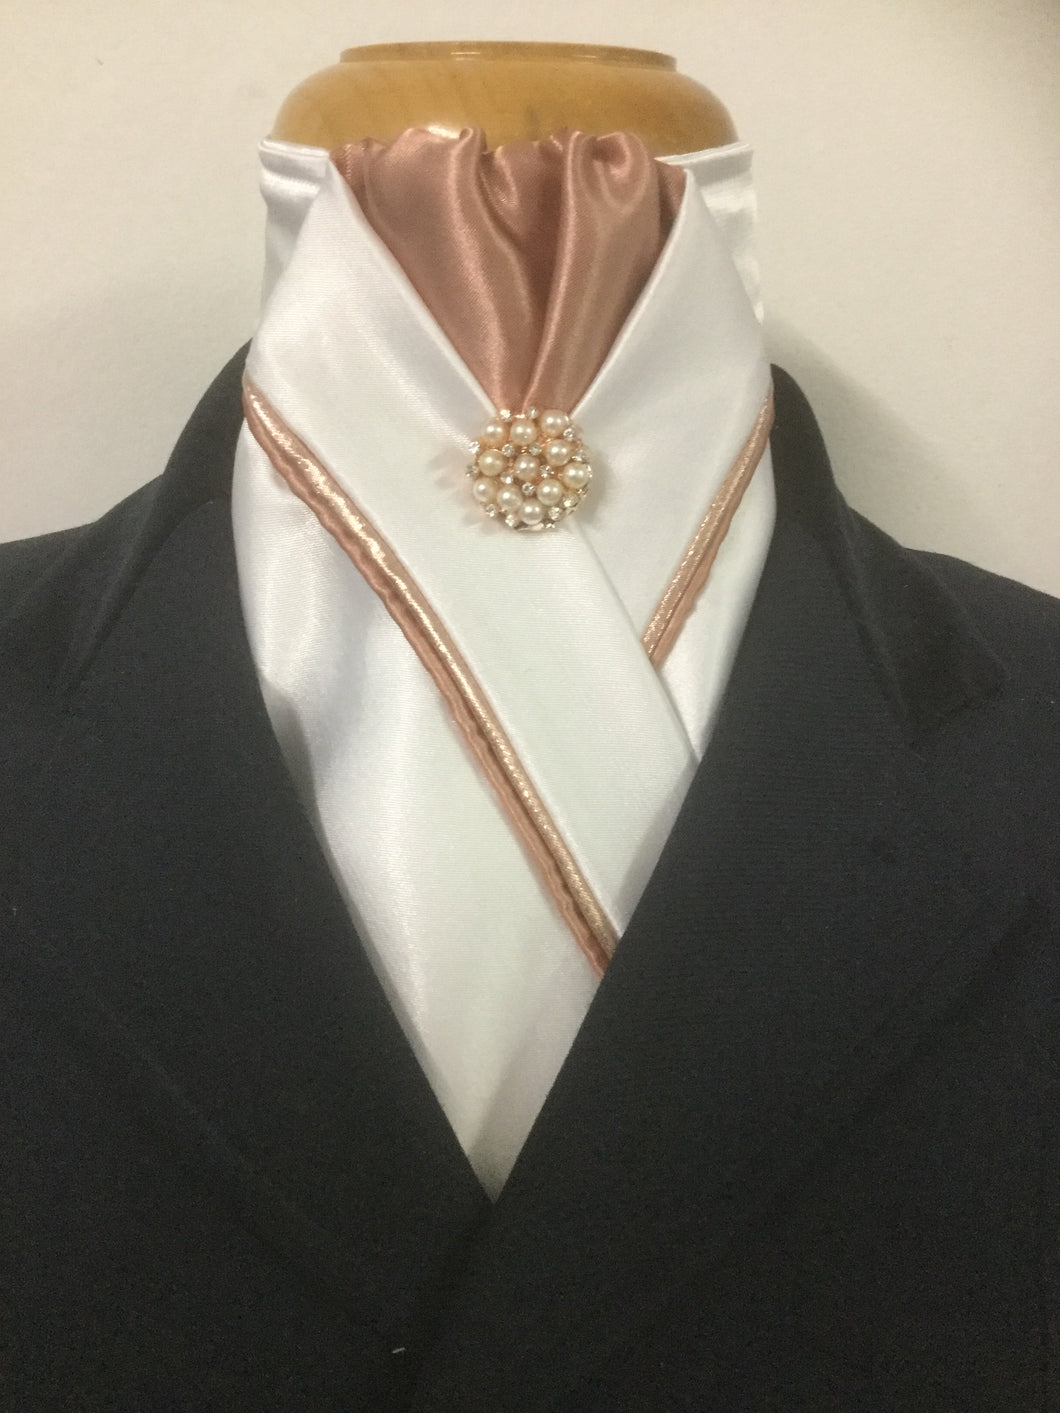 HHD Ivory Cream Satin Custom Pretied Stock Tie Rose Gold Piping